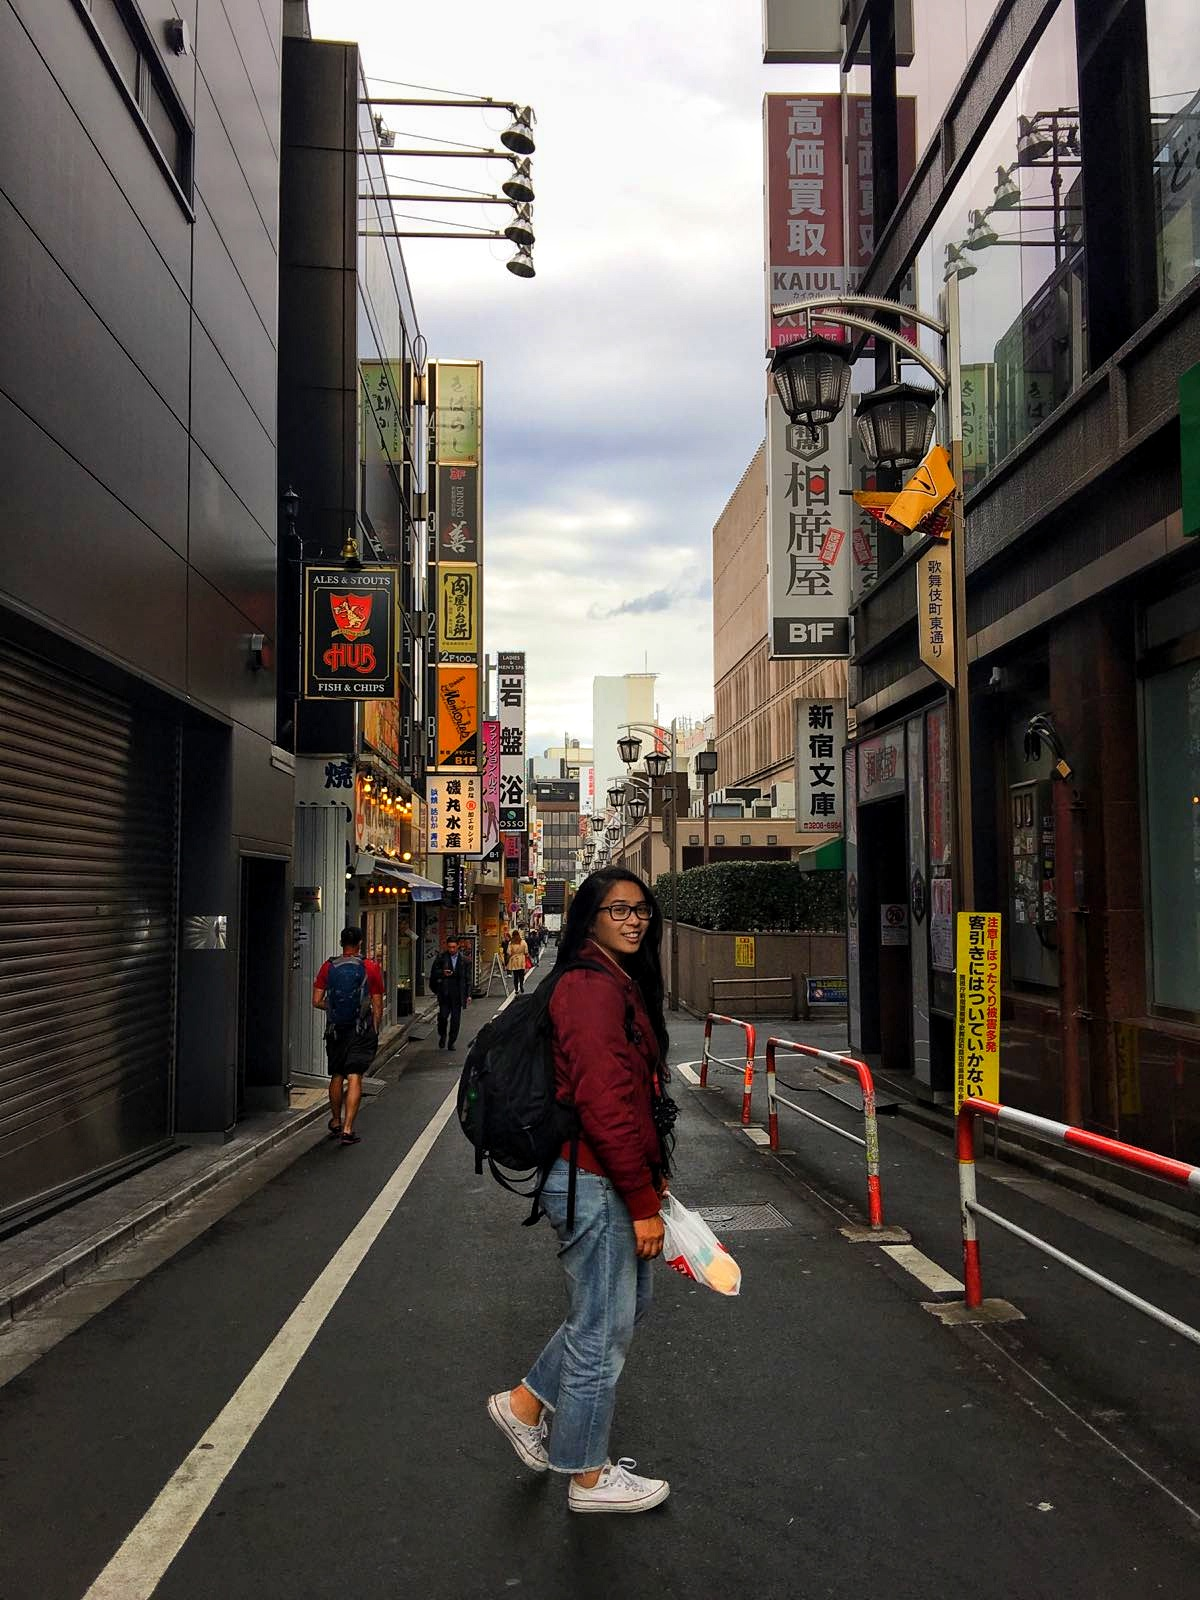 Japan city life shops stree style ootd